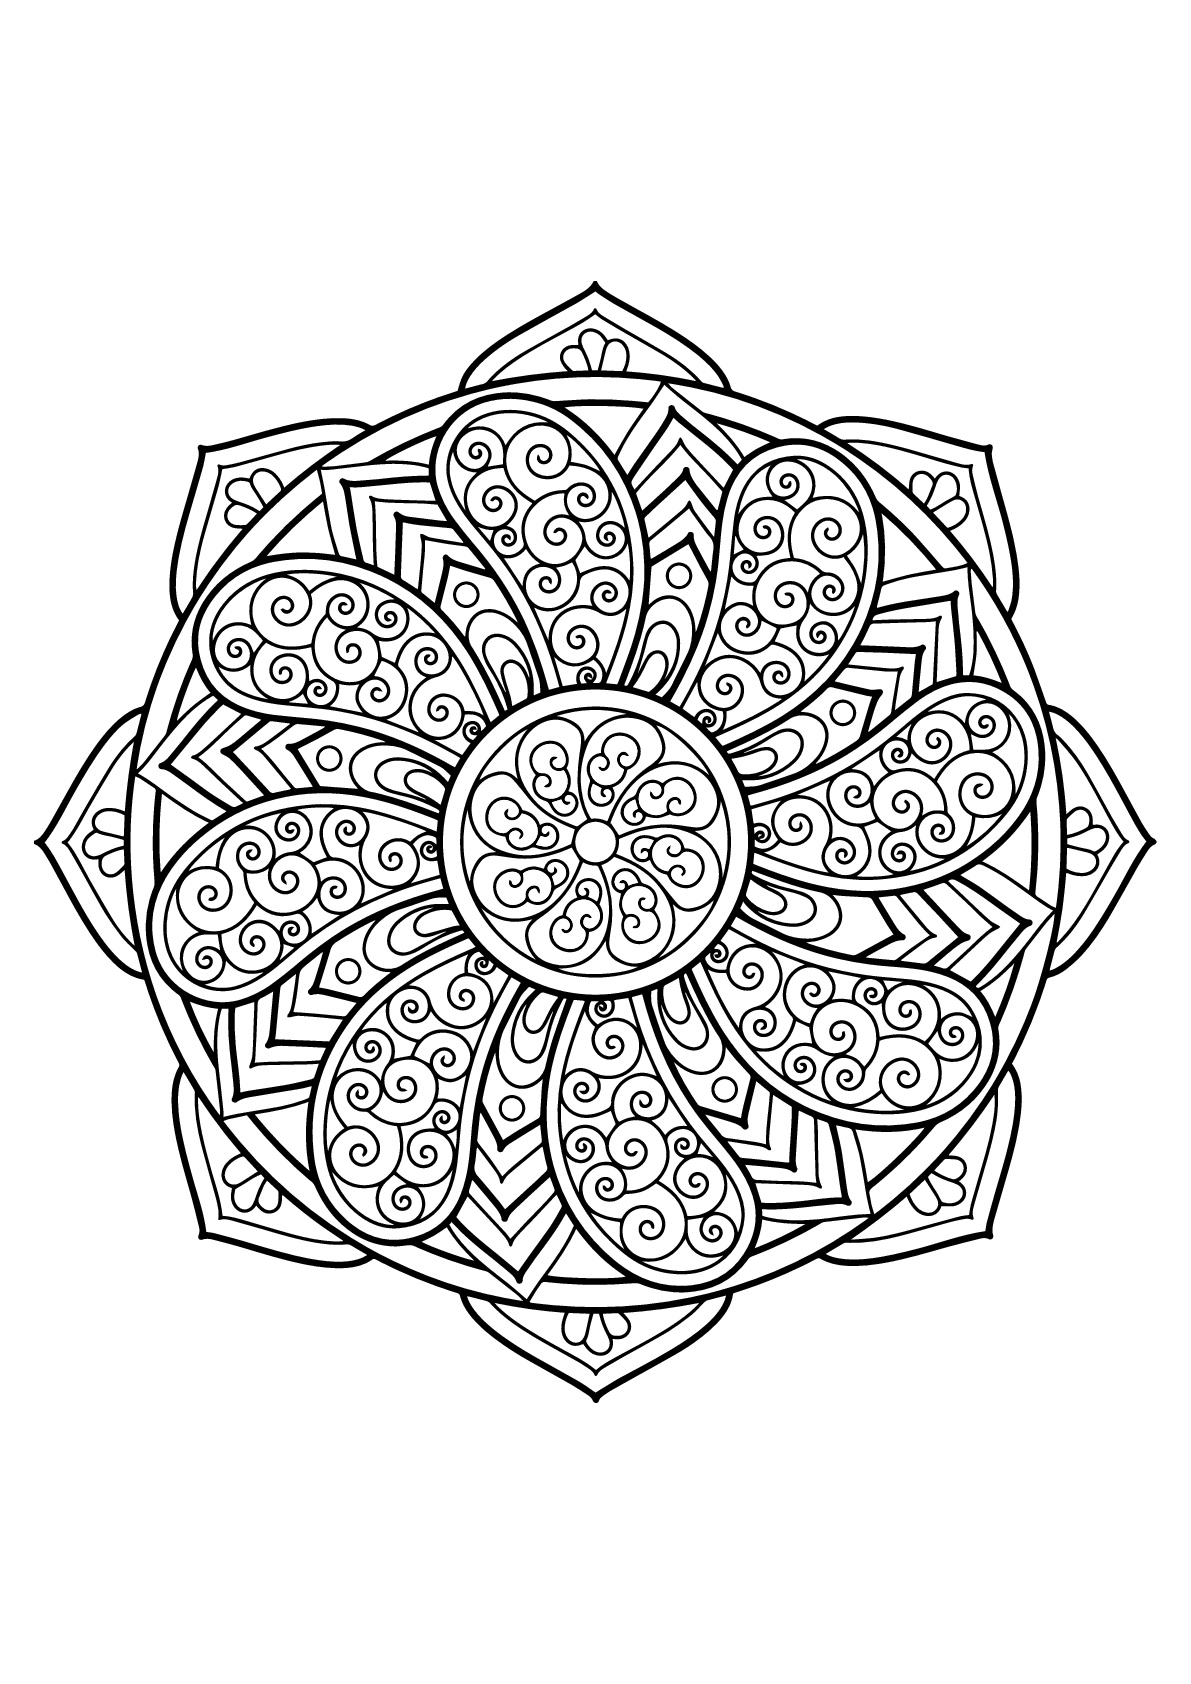 Mandala From Free Coloring Books For Adults 27